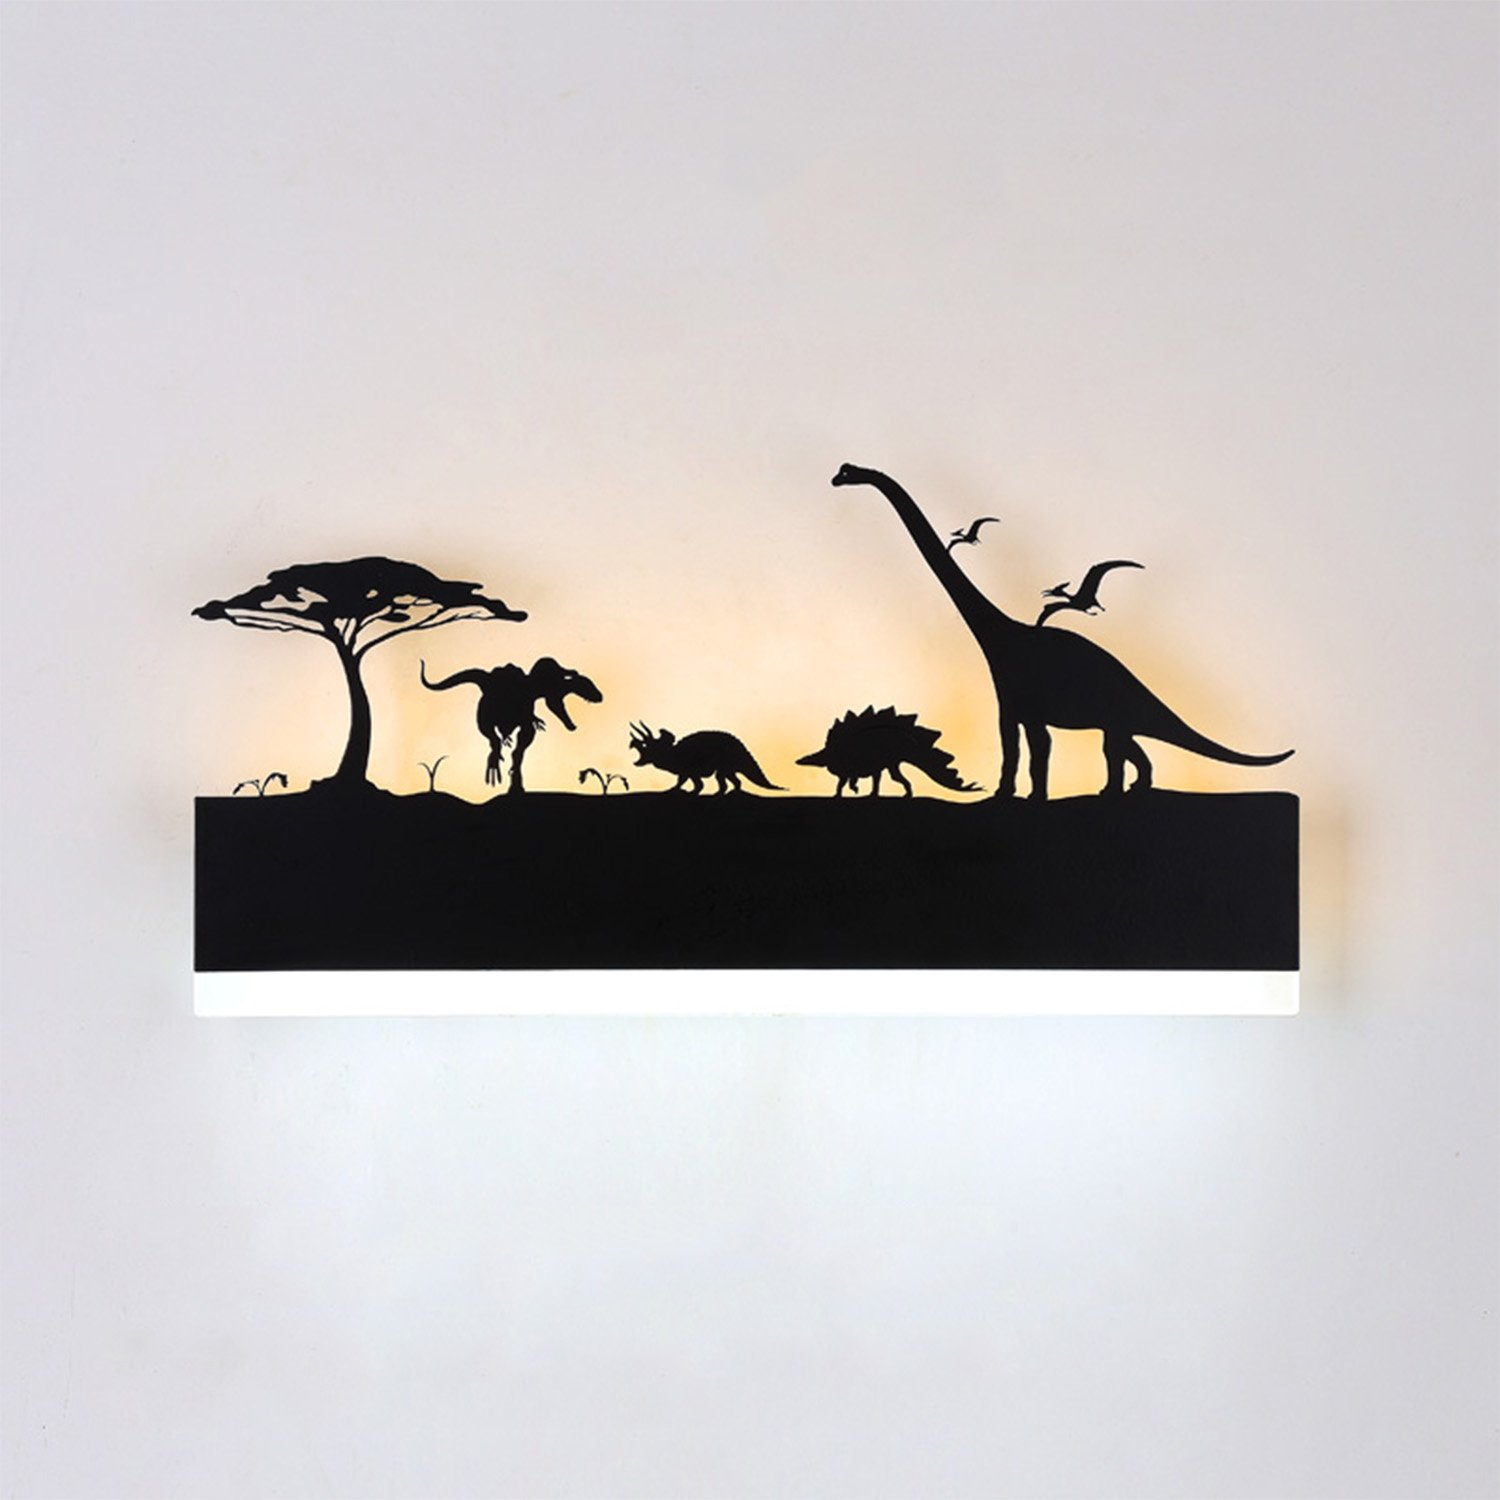 Augrous Wall Light LED Up and Down Indoor Lamp Dinosaur Design for Living Room Hallway Mural Lamp